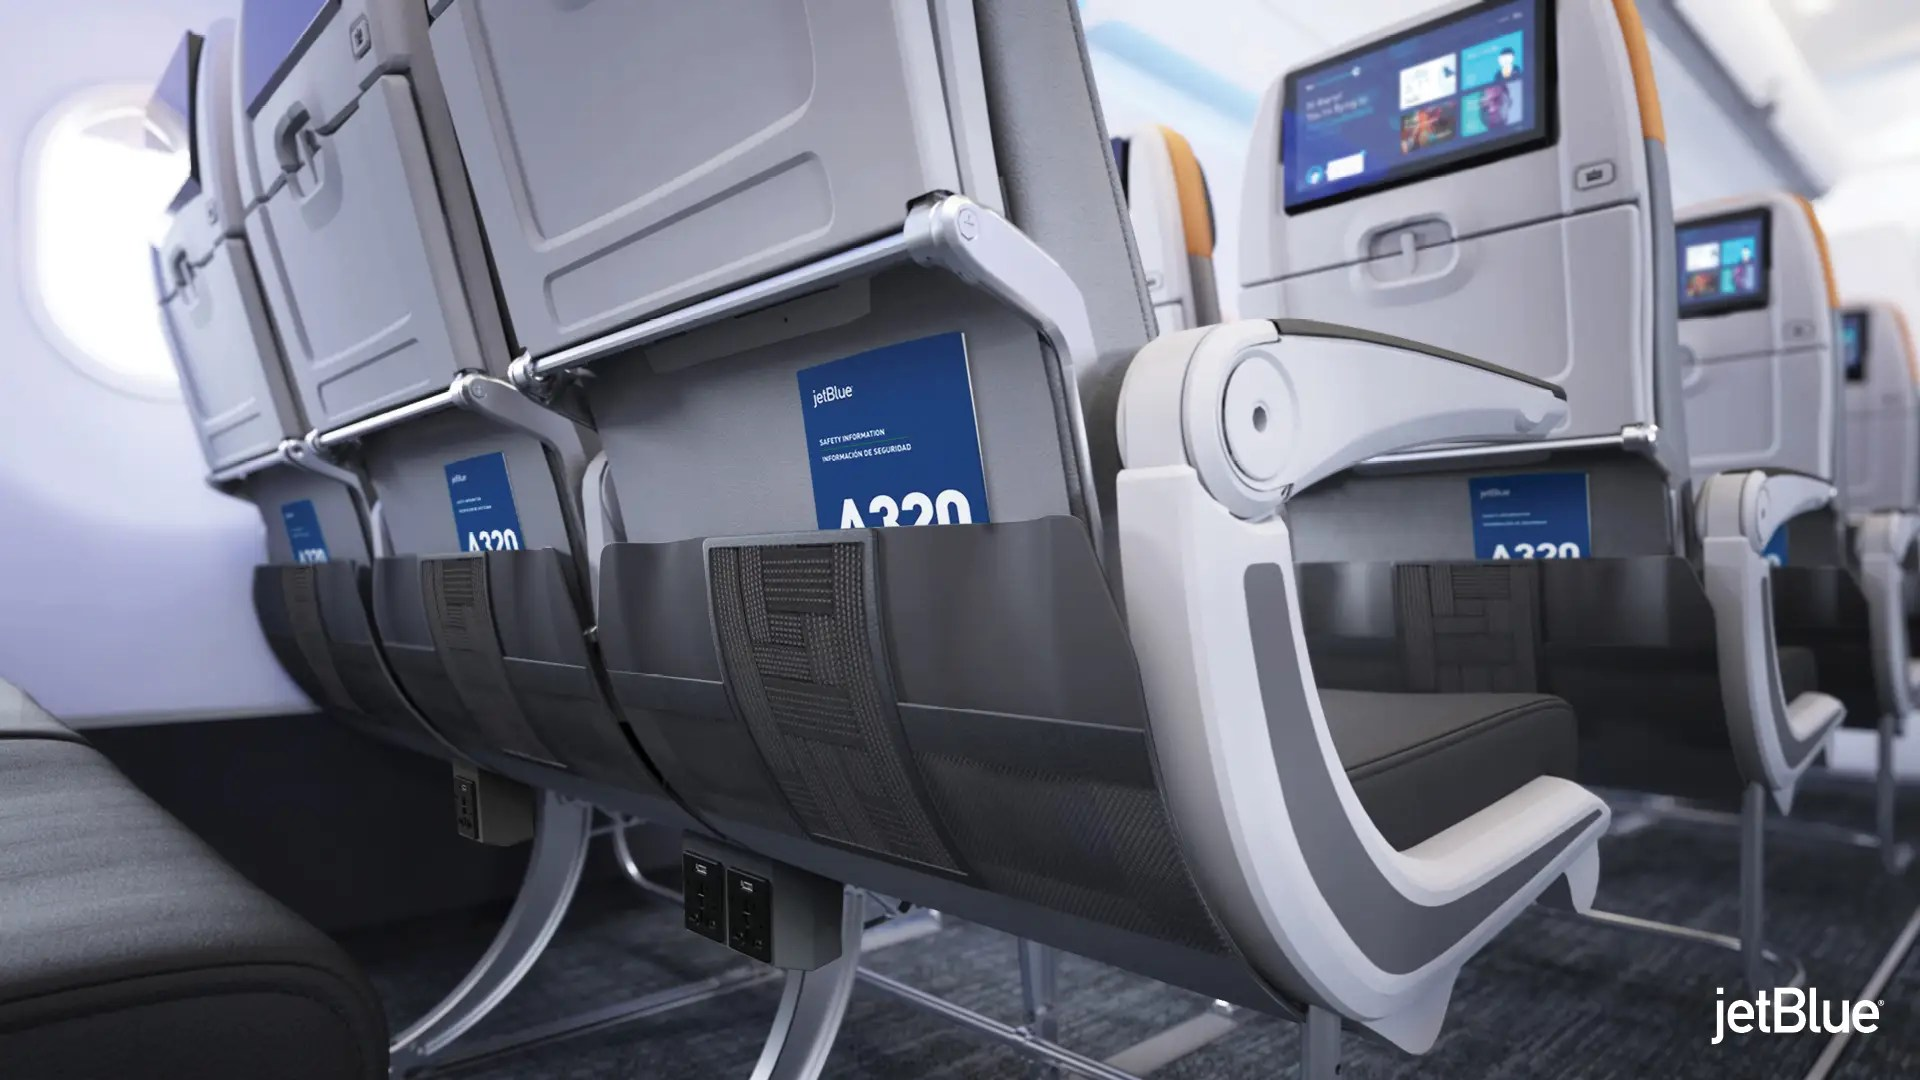 JetBlues Economy Seats Will Now Have Less Room Business